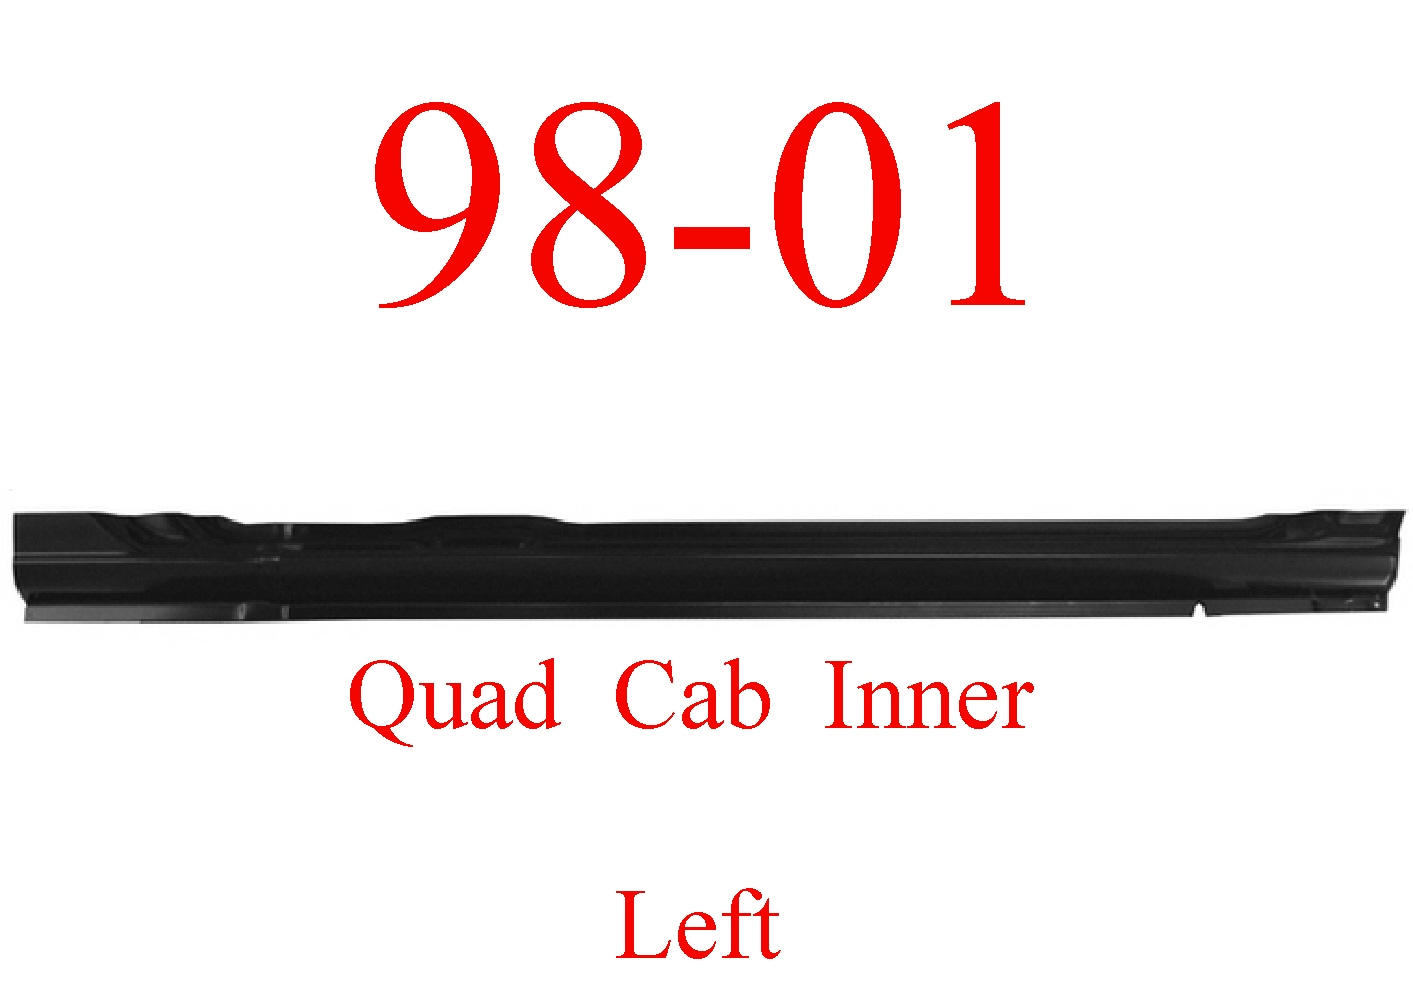 98-01 Dodge Left Quad Cab Inner Rocker Panel